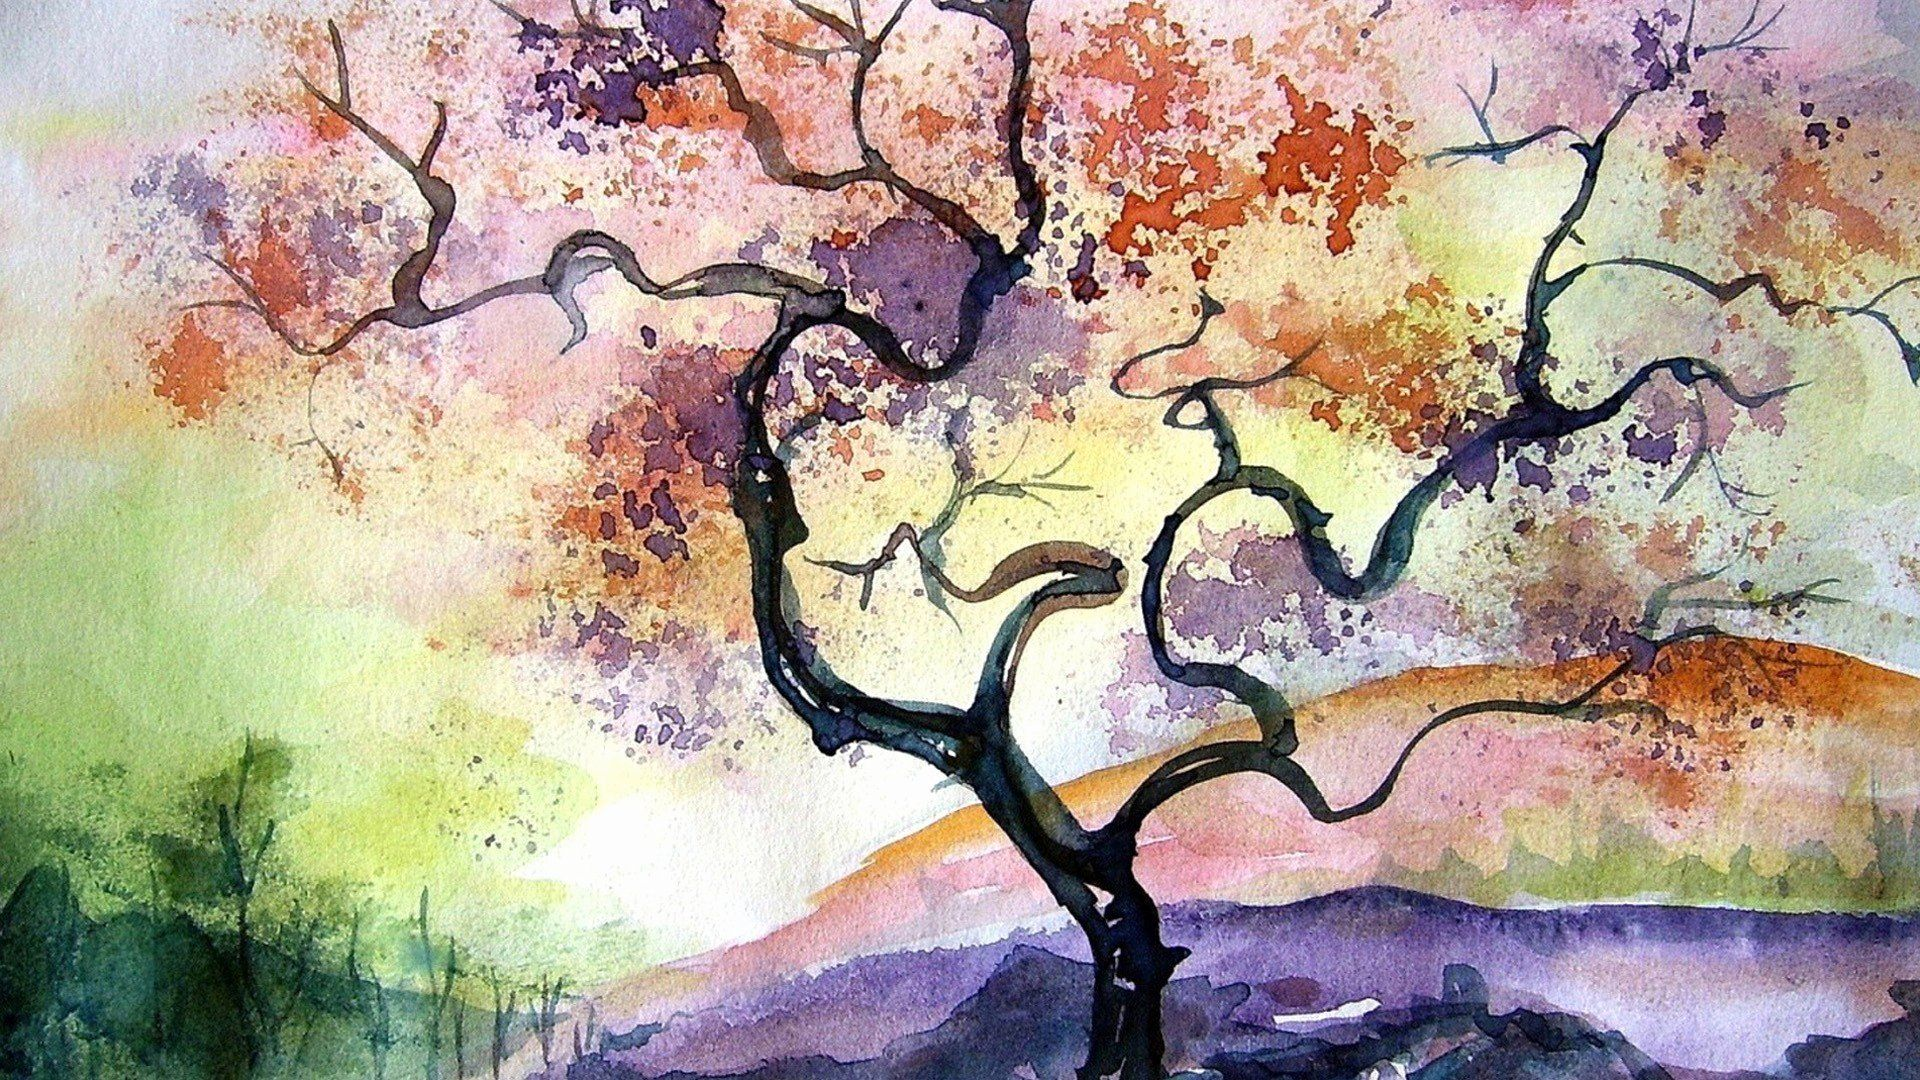 How To Color Anime Using Watercolor In 2020 Tree Watercolor